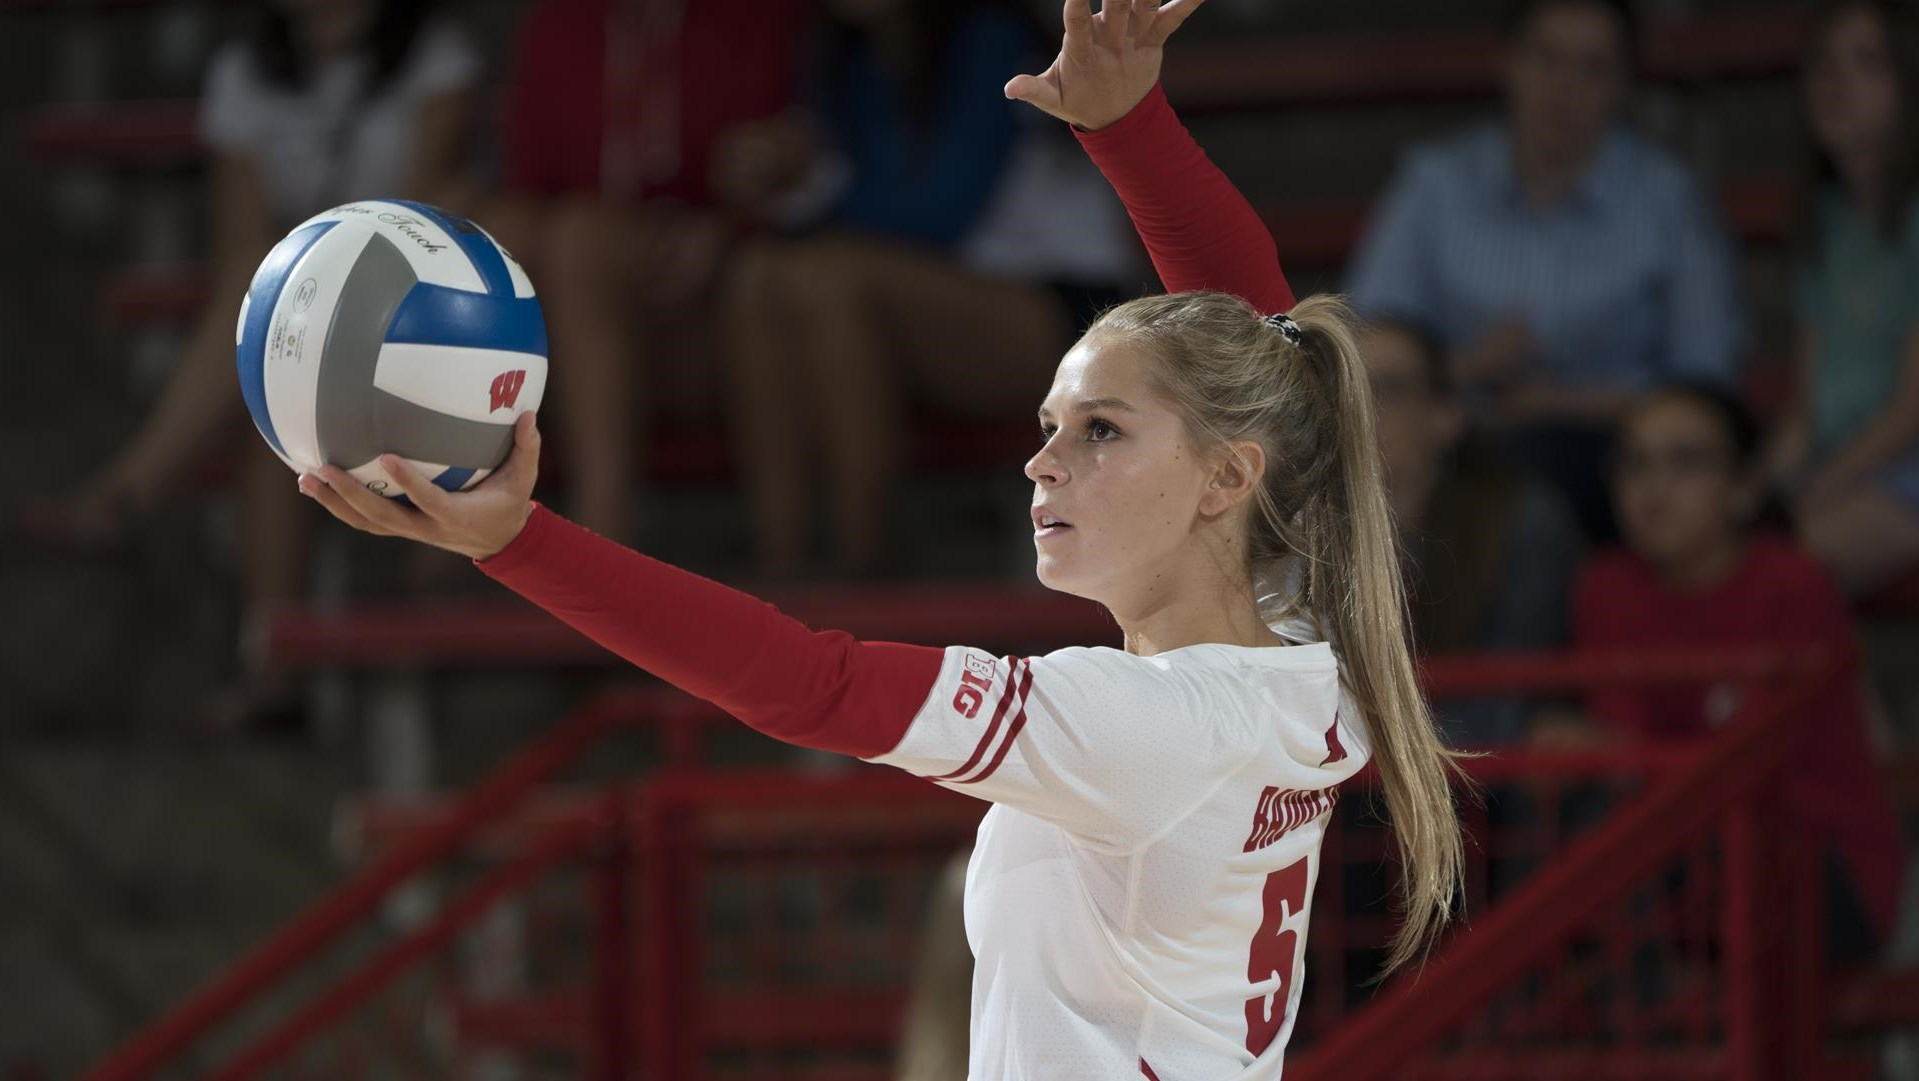 Riley Bell Volleyball Wisconsin Badgers